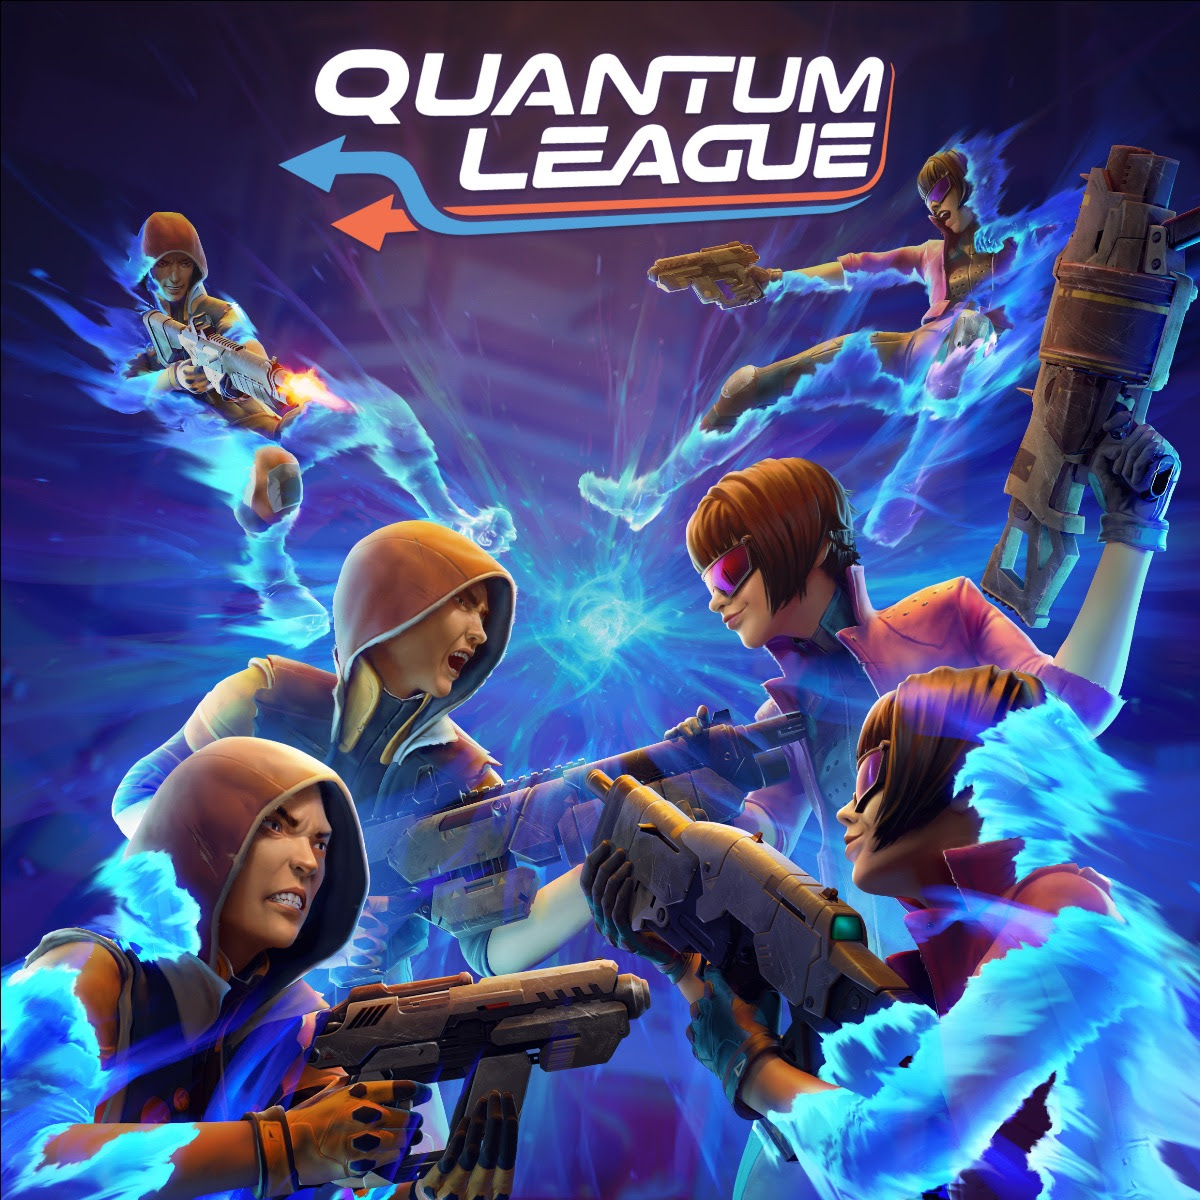 QUANTUM LEAGUE disponibile da oggi su Steam